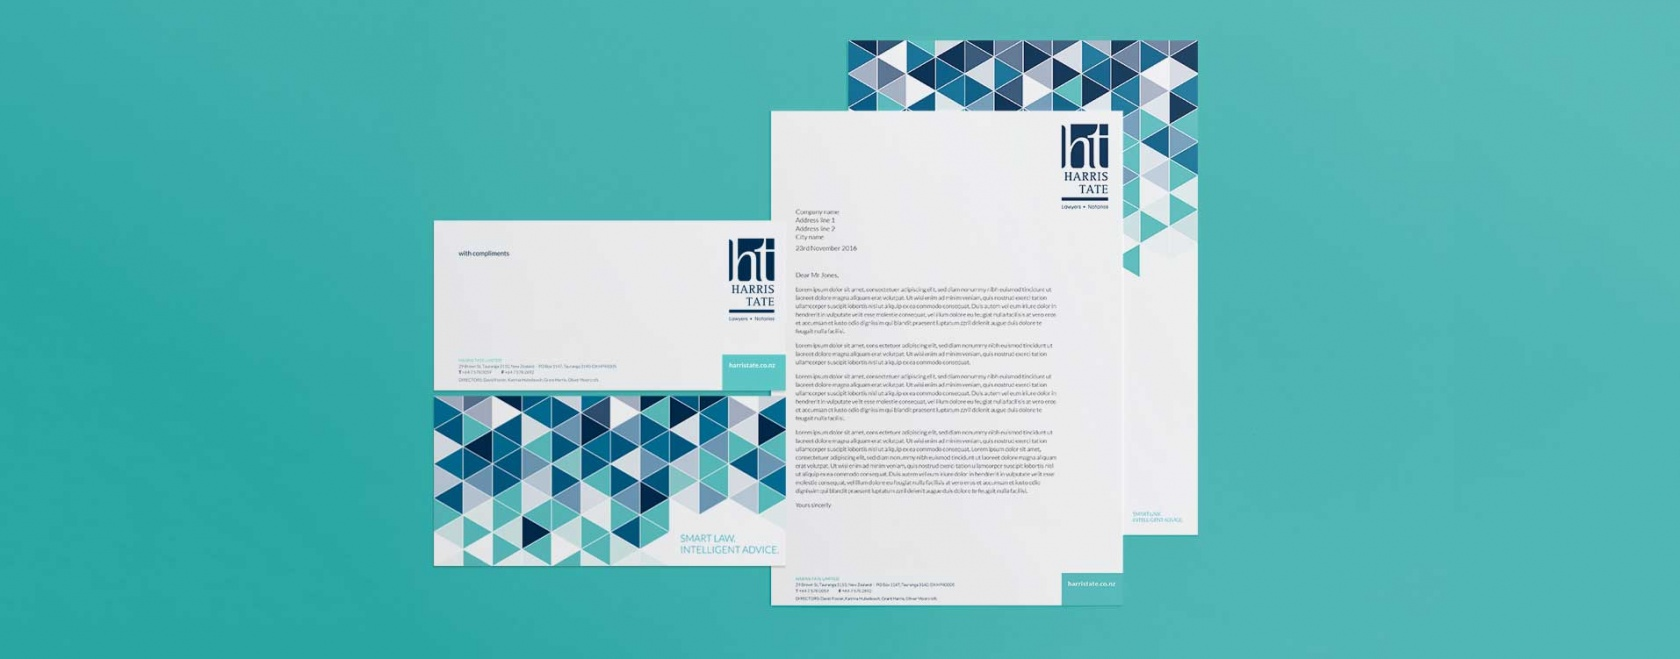 project-HarrisTate-stationery